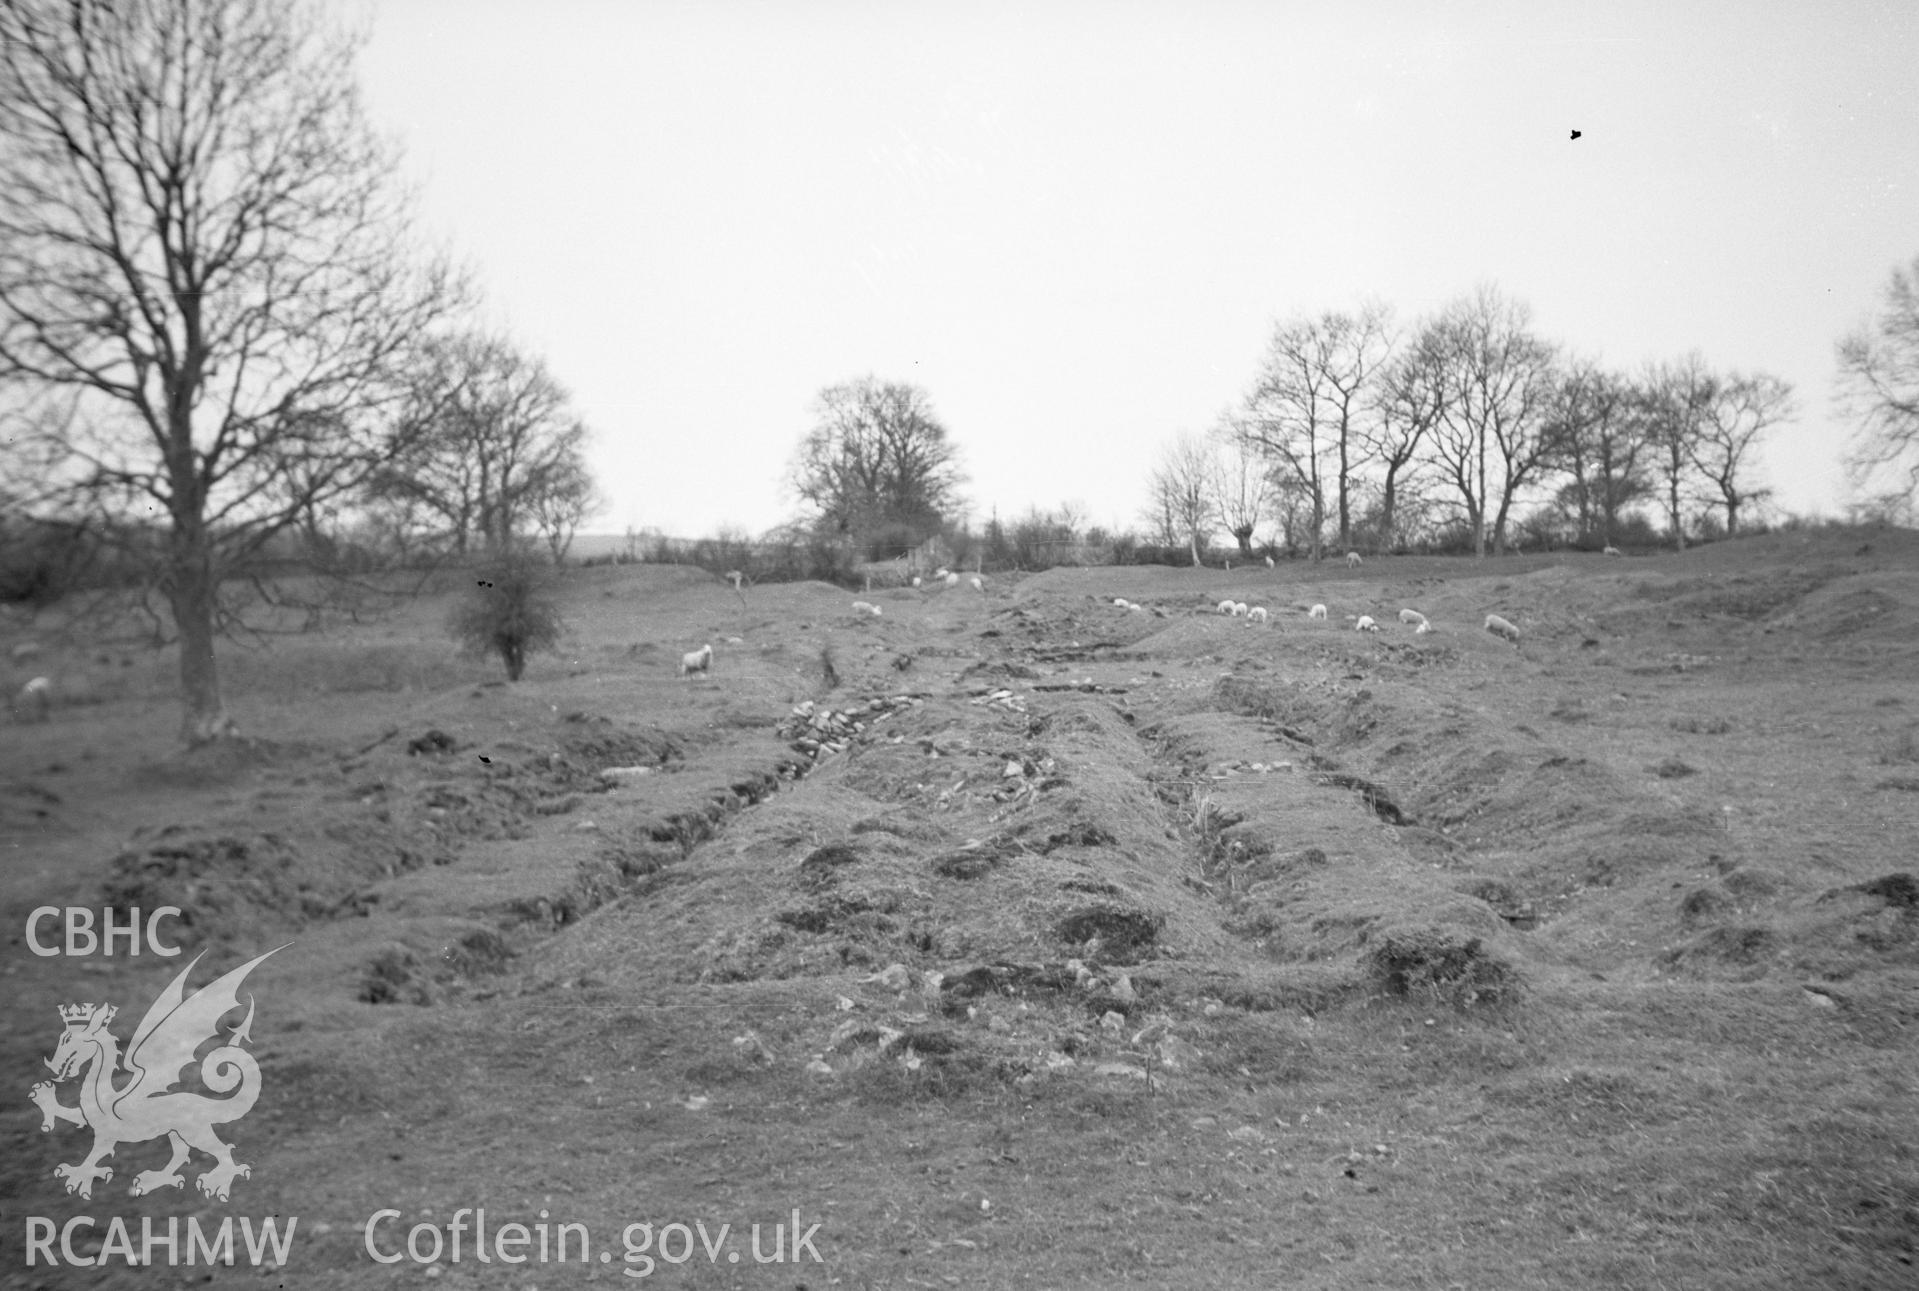 Digital copy of a nitrate negative showing Castell Collen Roman Fort.